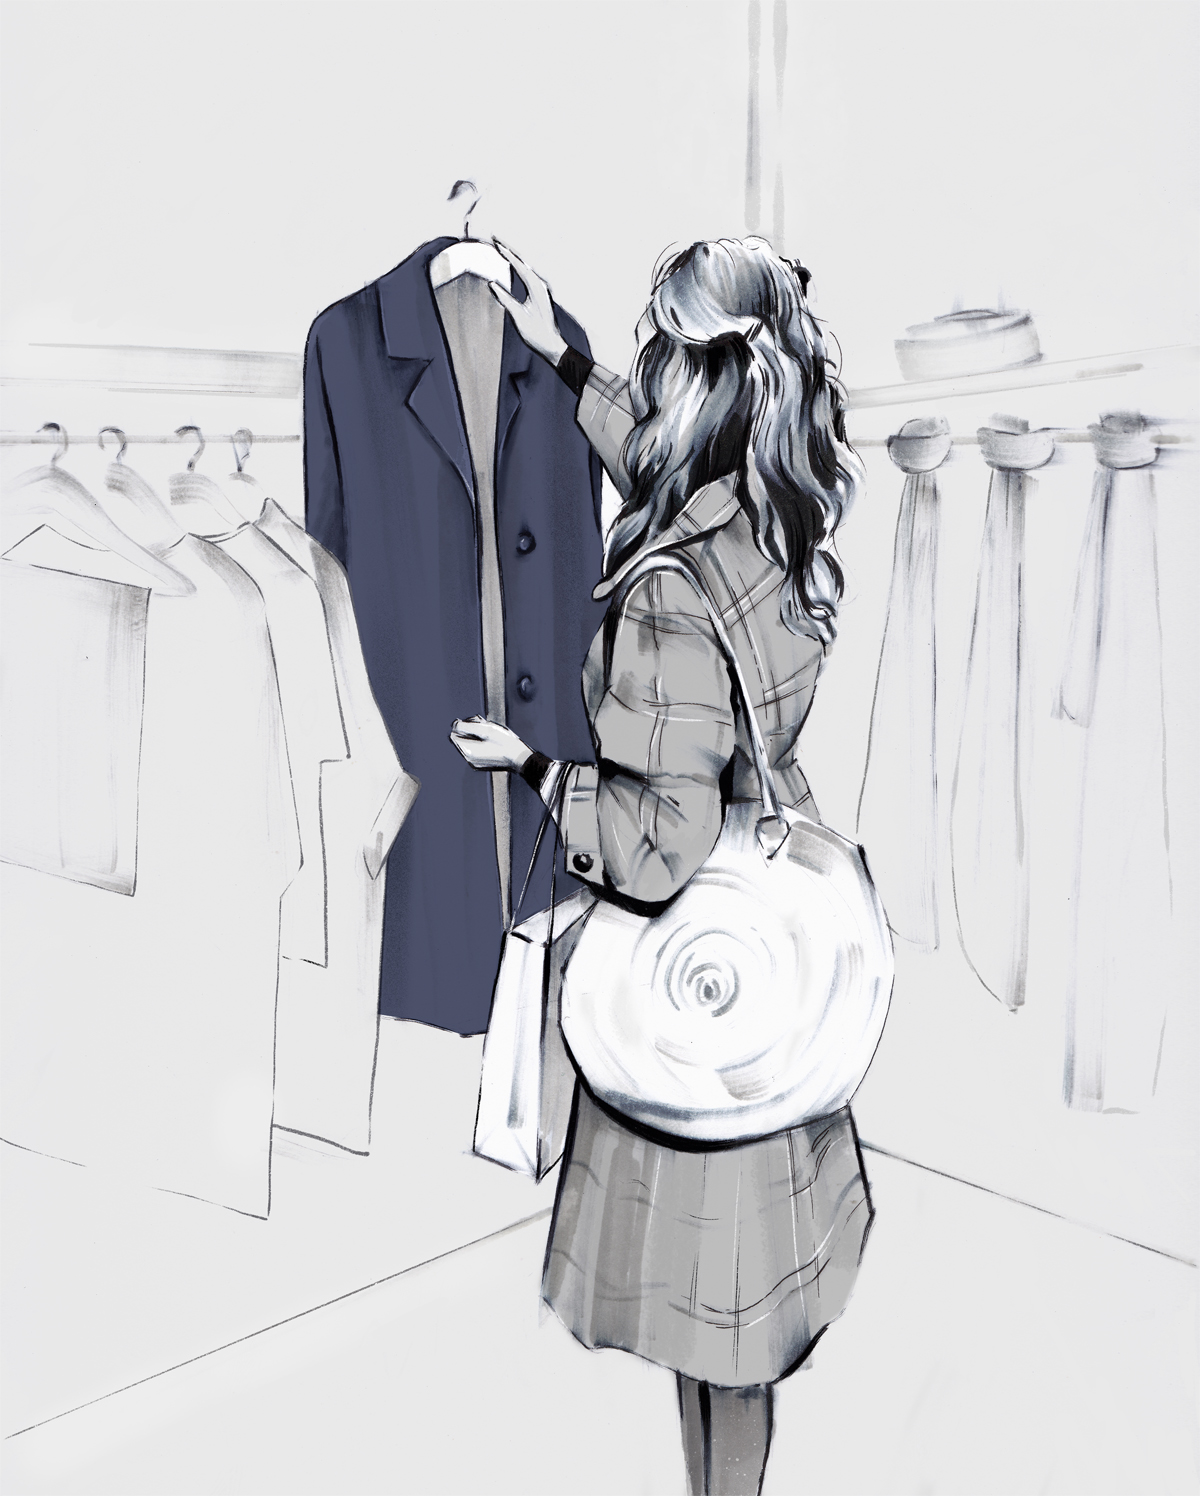 Girl shopping for a new coat illustration by Laura Hope